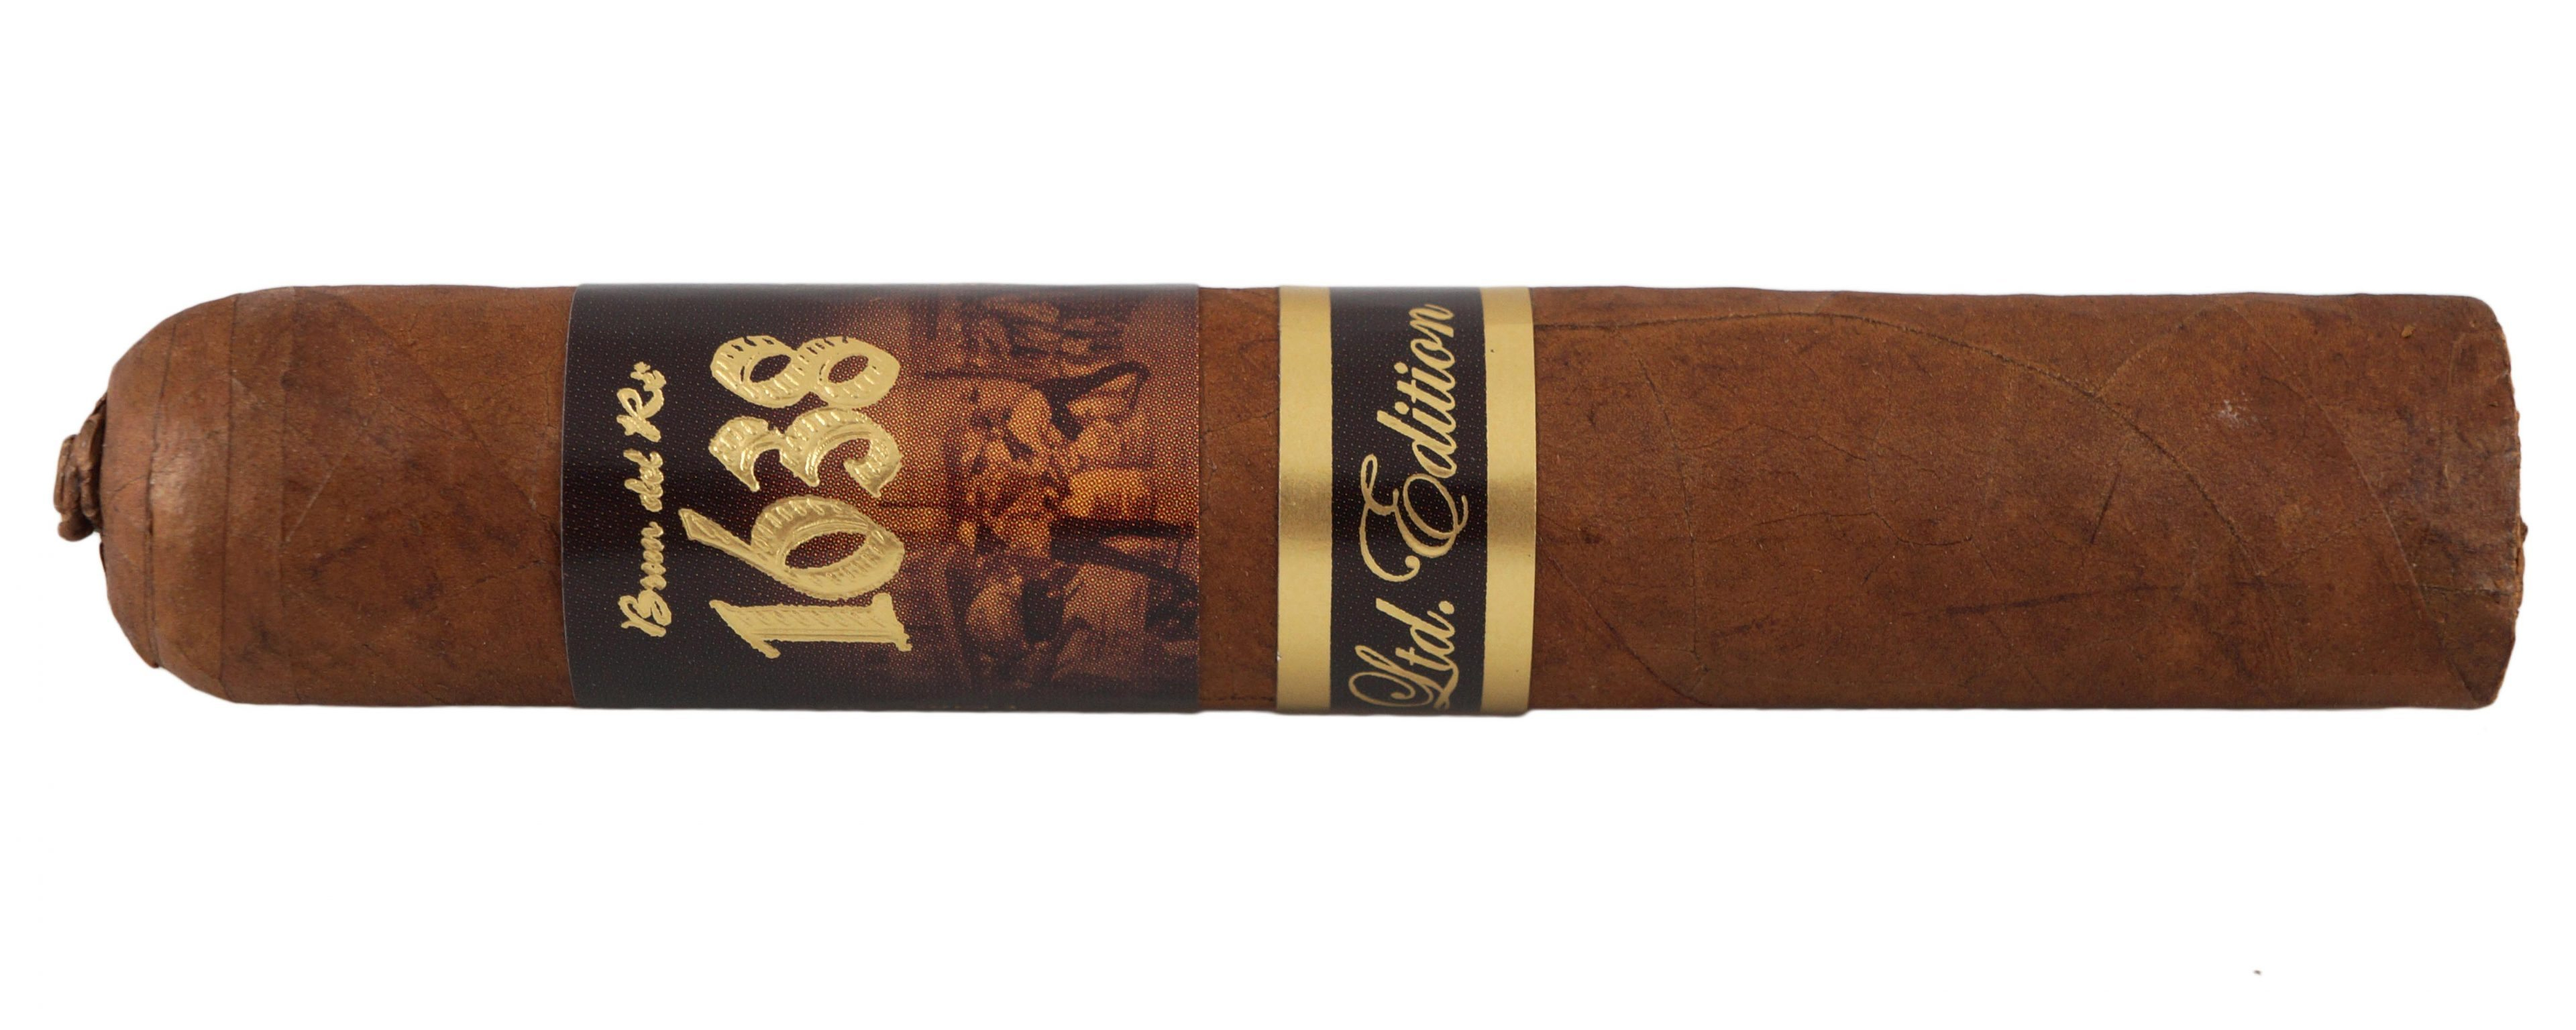 Blind Cigar Review: Brun del Ré | 1638 Gran Toro Ltd. Edition